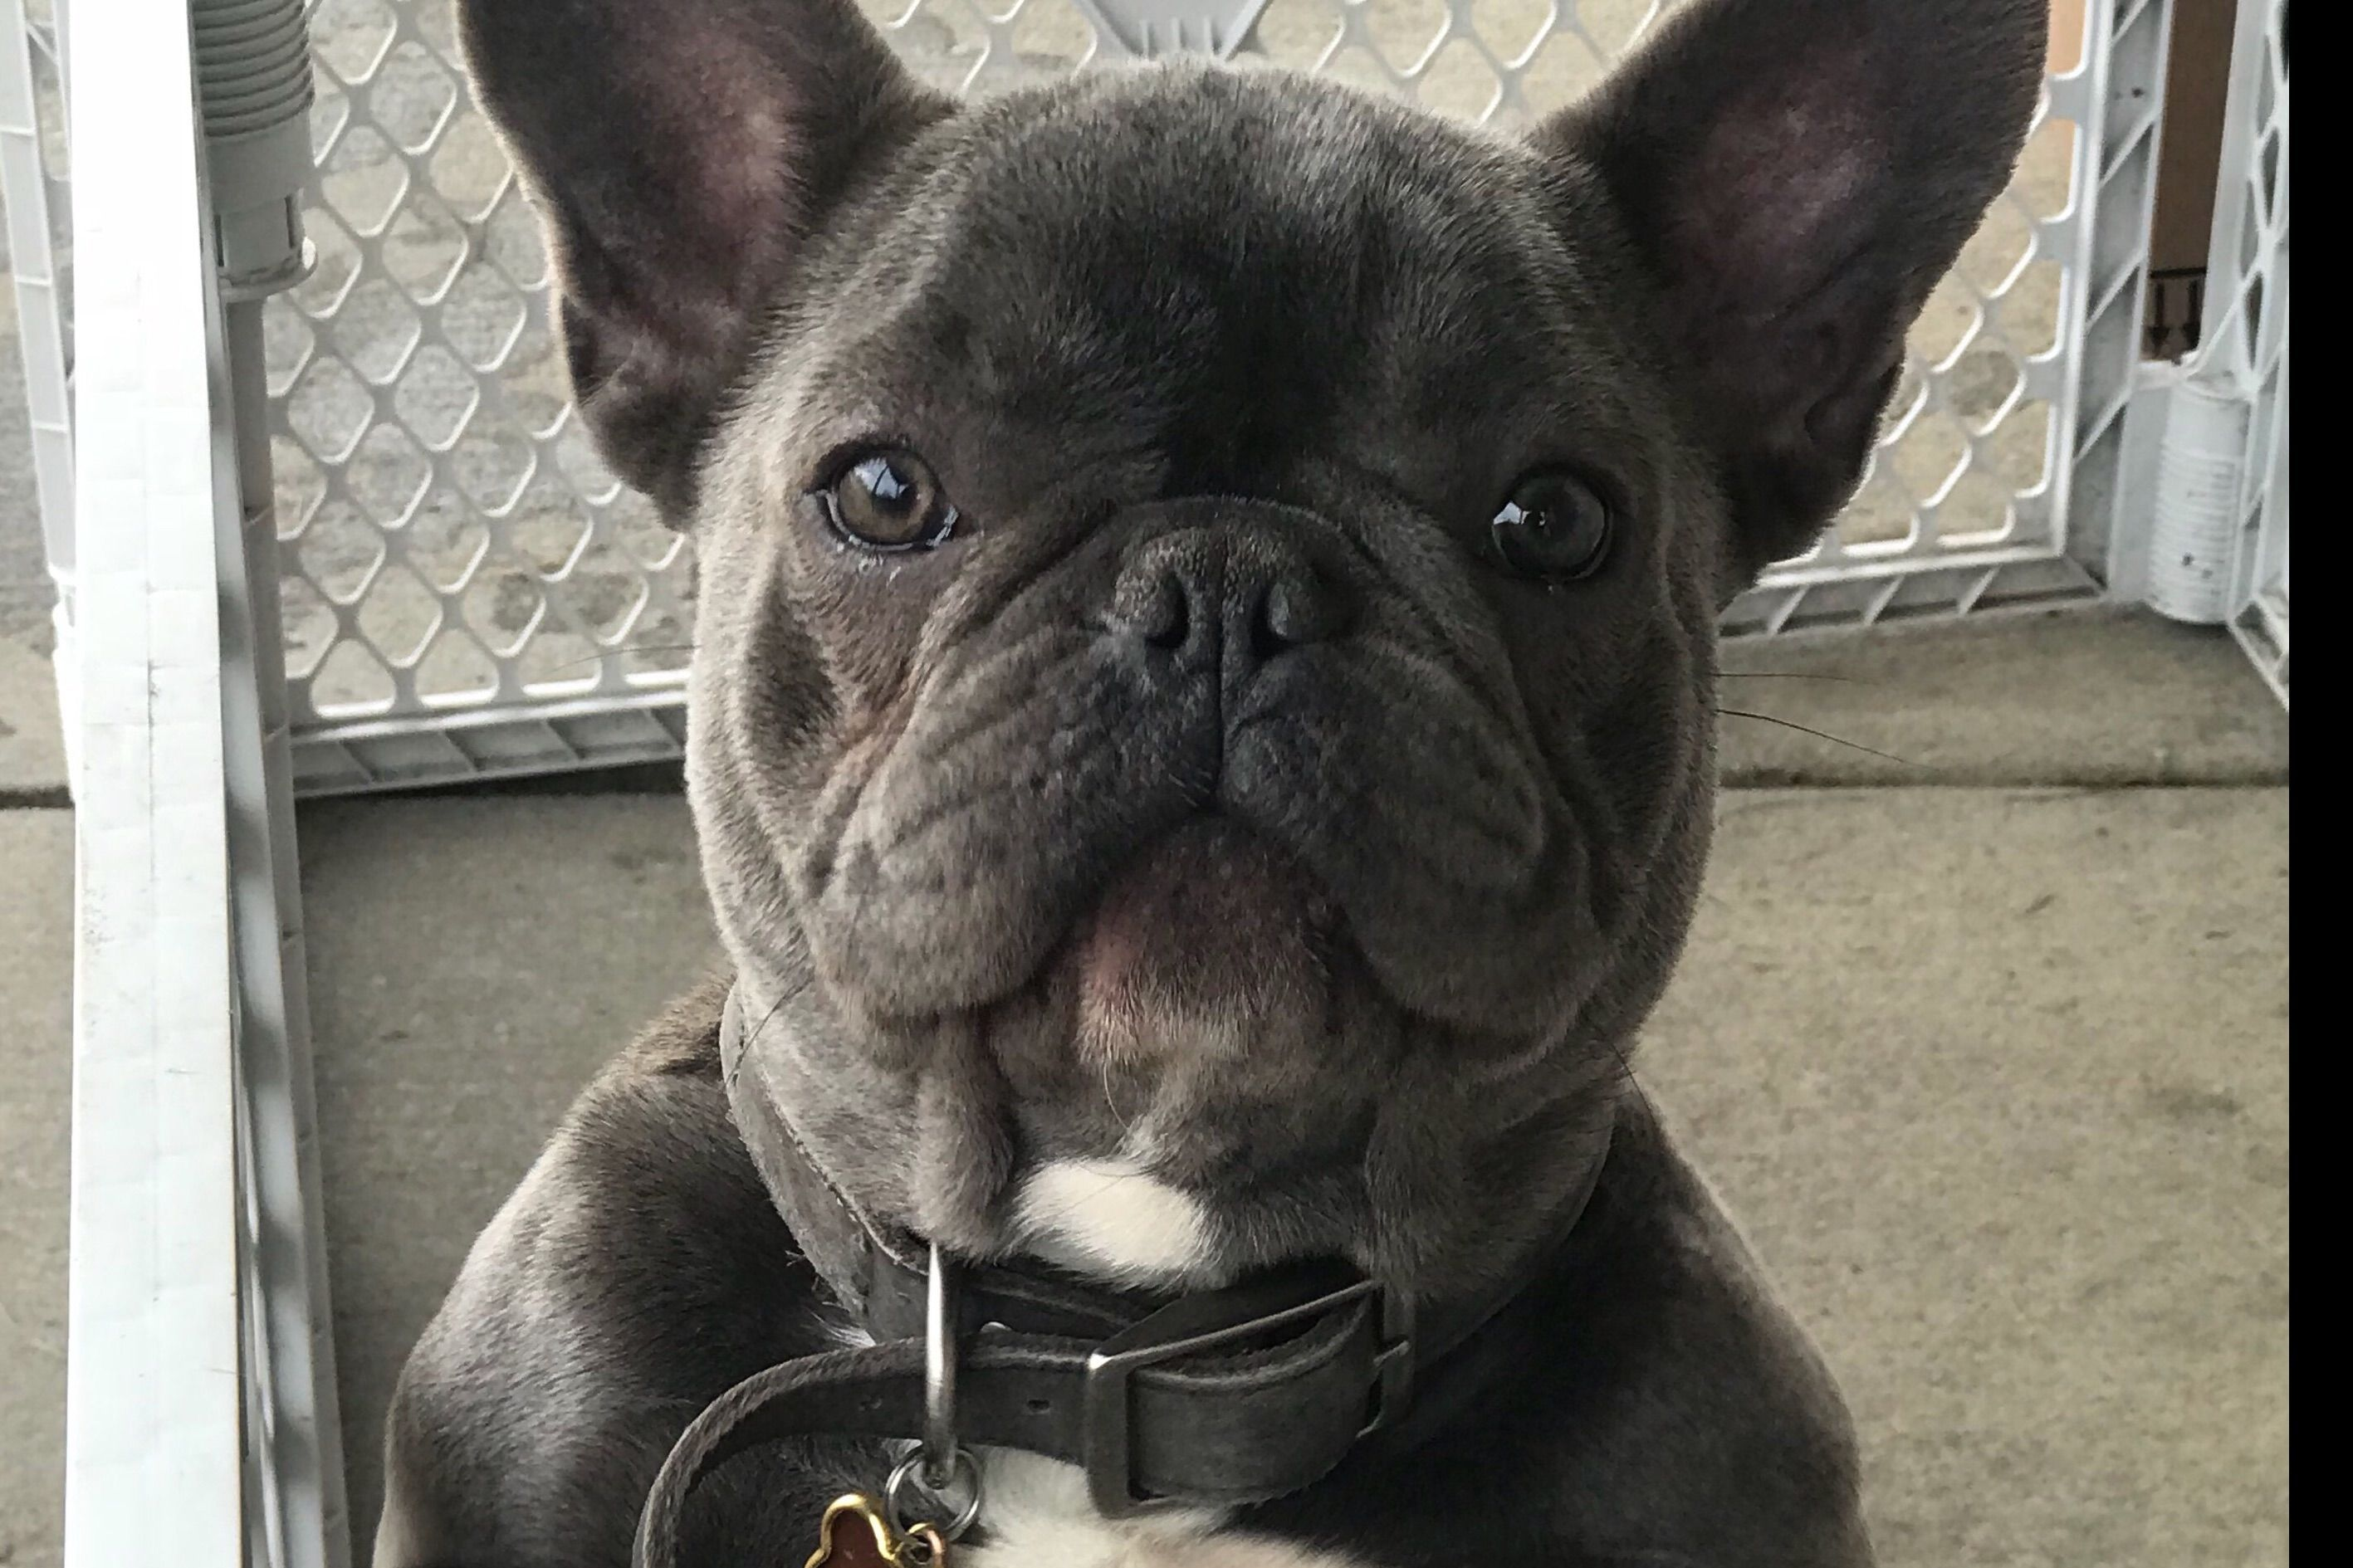 Jeanette Higashi Has Puppies For Sale On Akc Puppyfinder In 2020 Puppies For Sale Frenchie Puppies For Sale French Bulldog